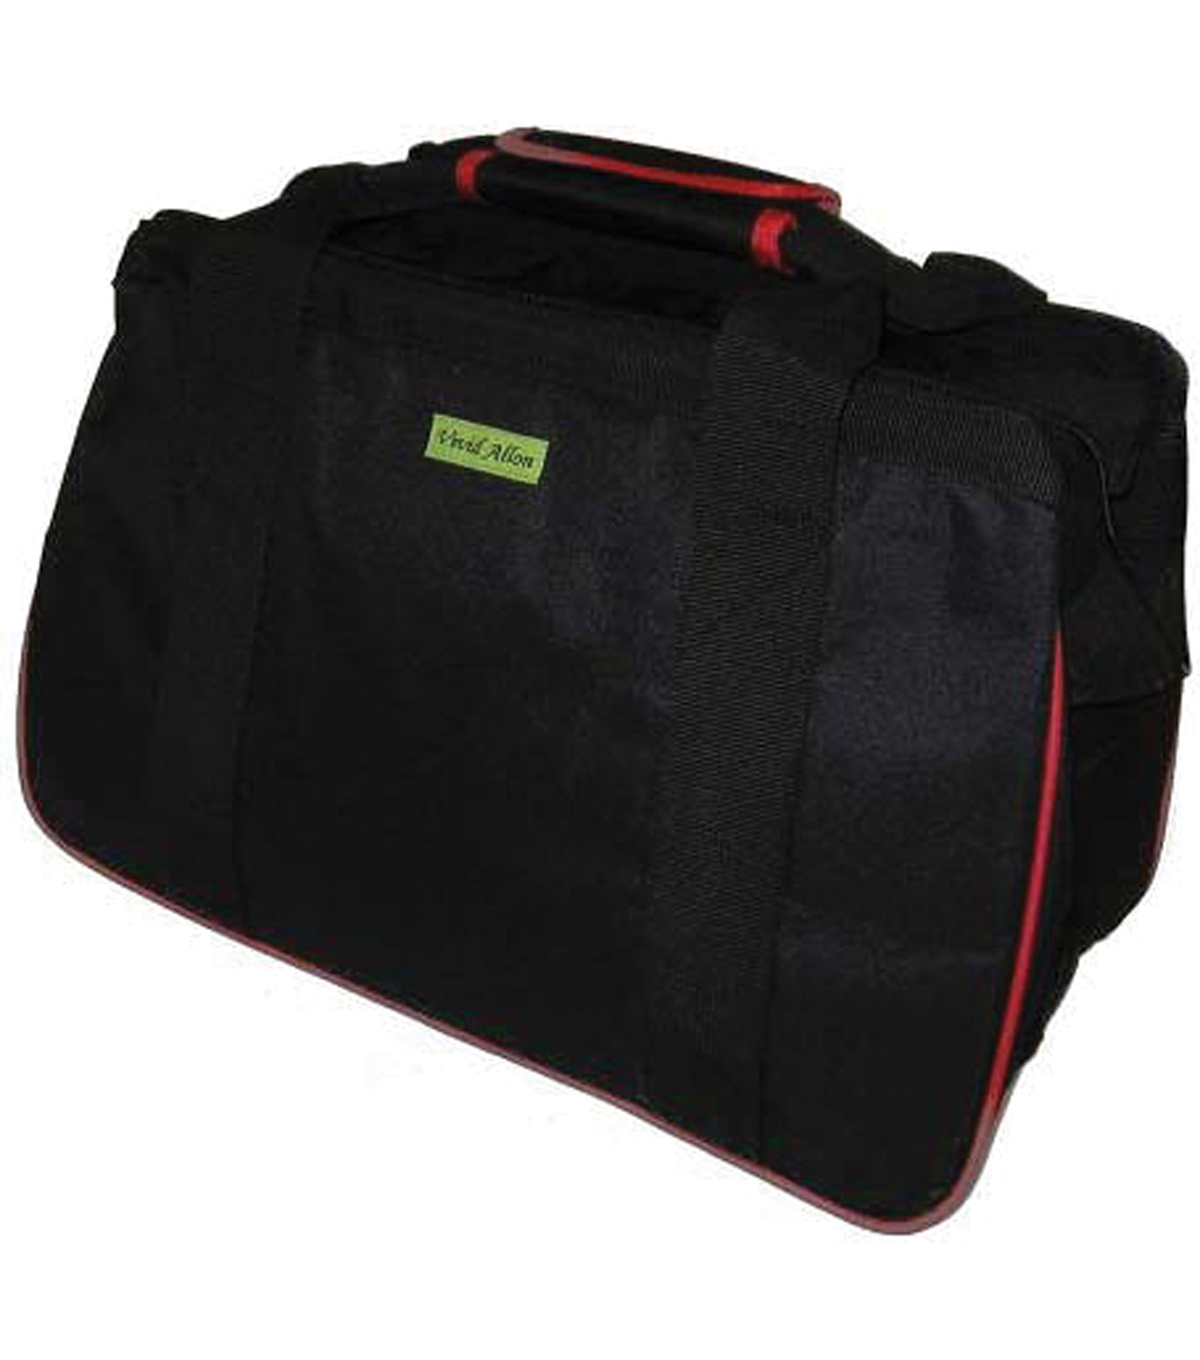 JanetBasket Eco Bag-Black/Red